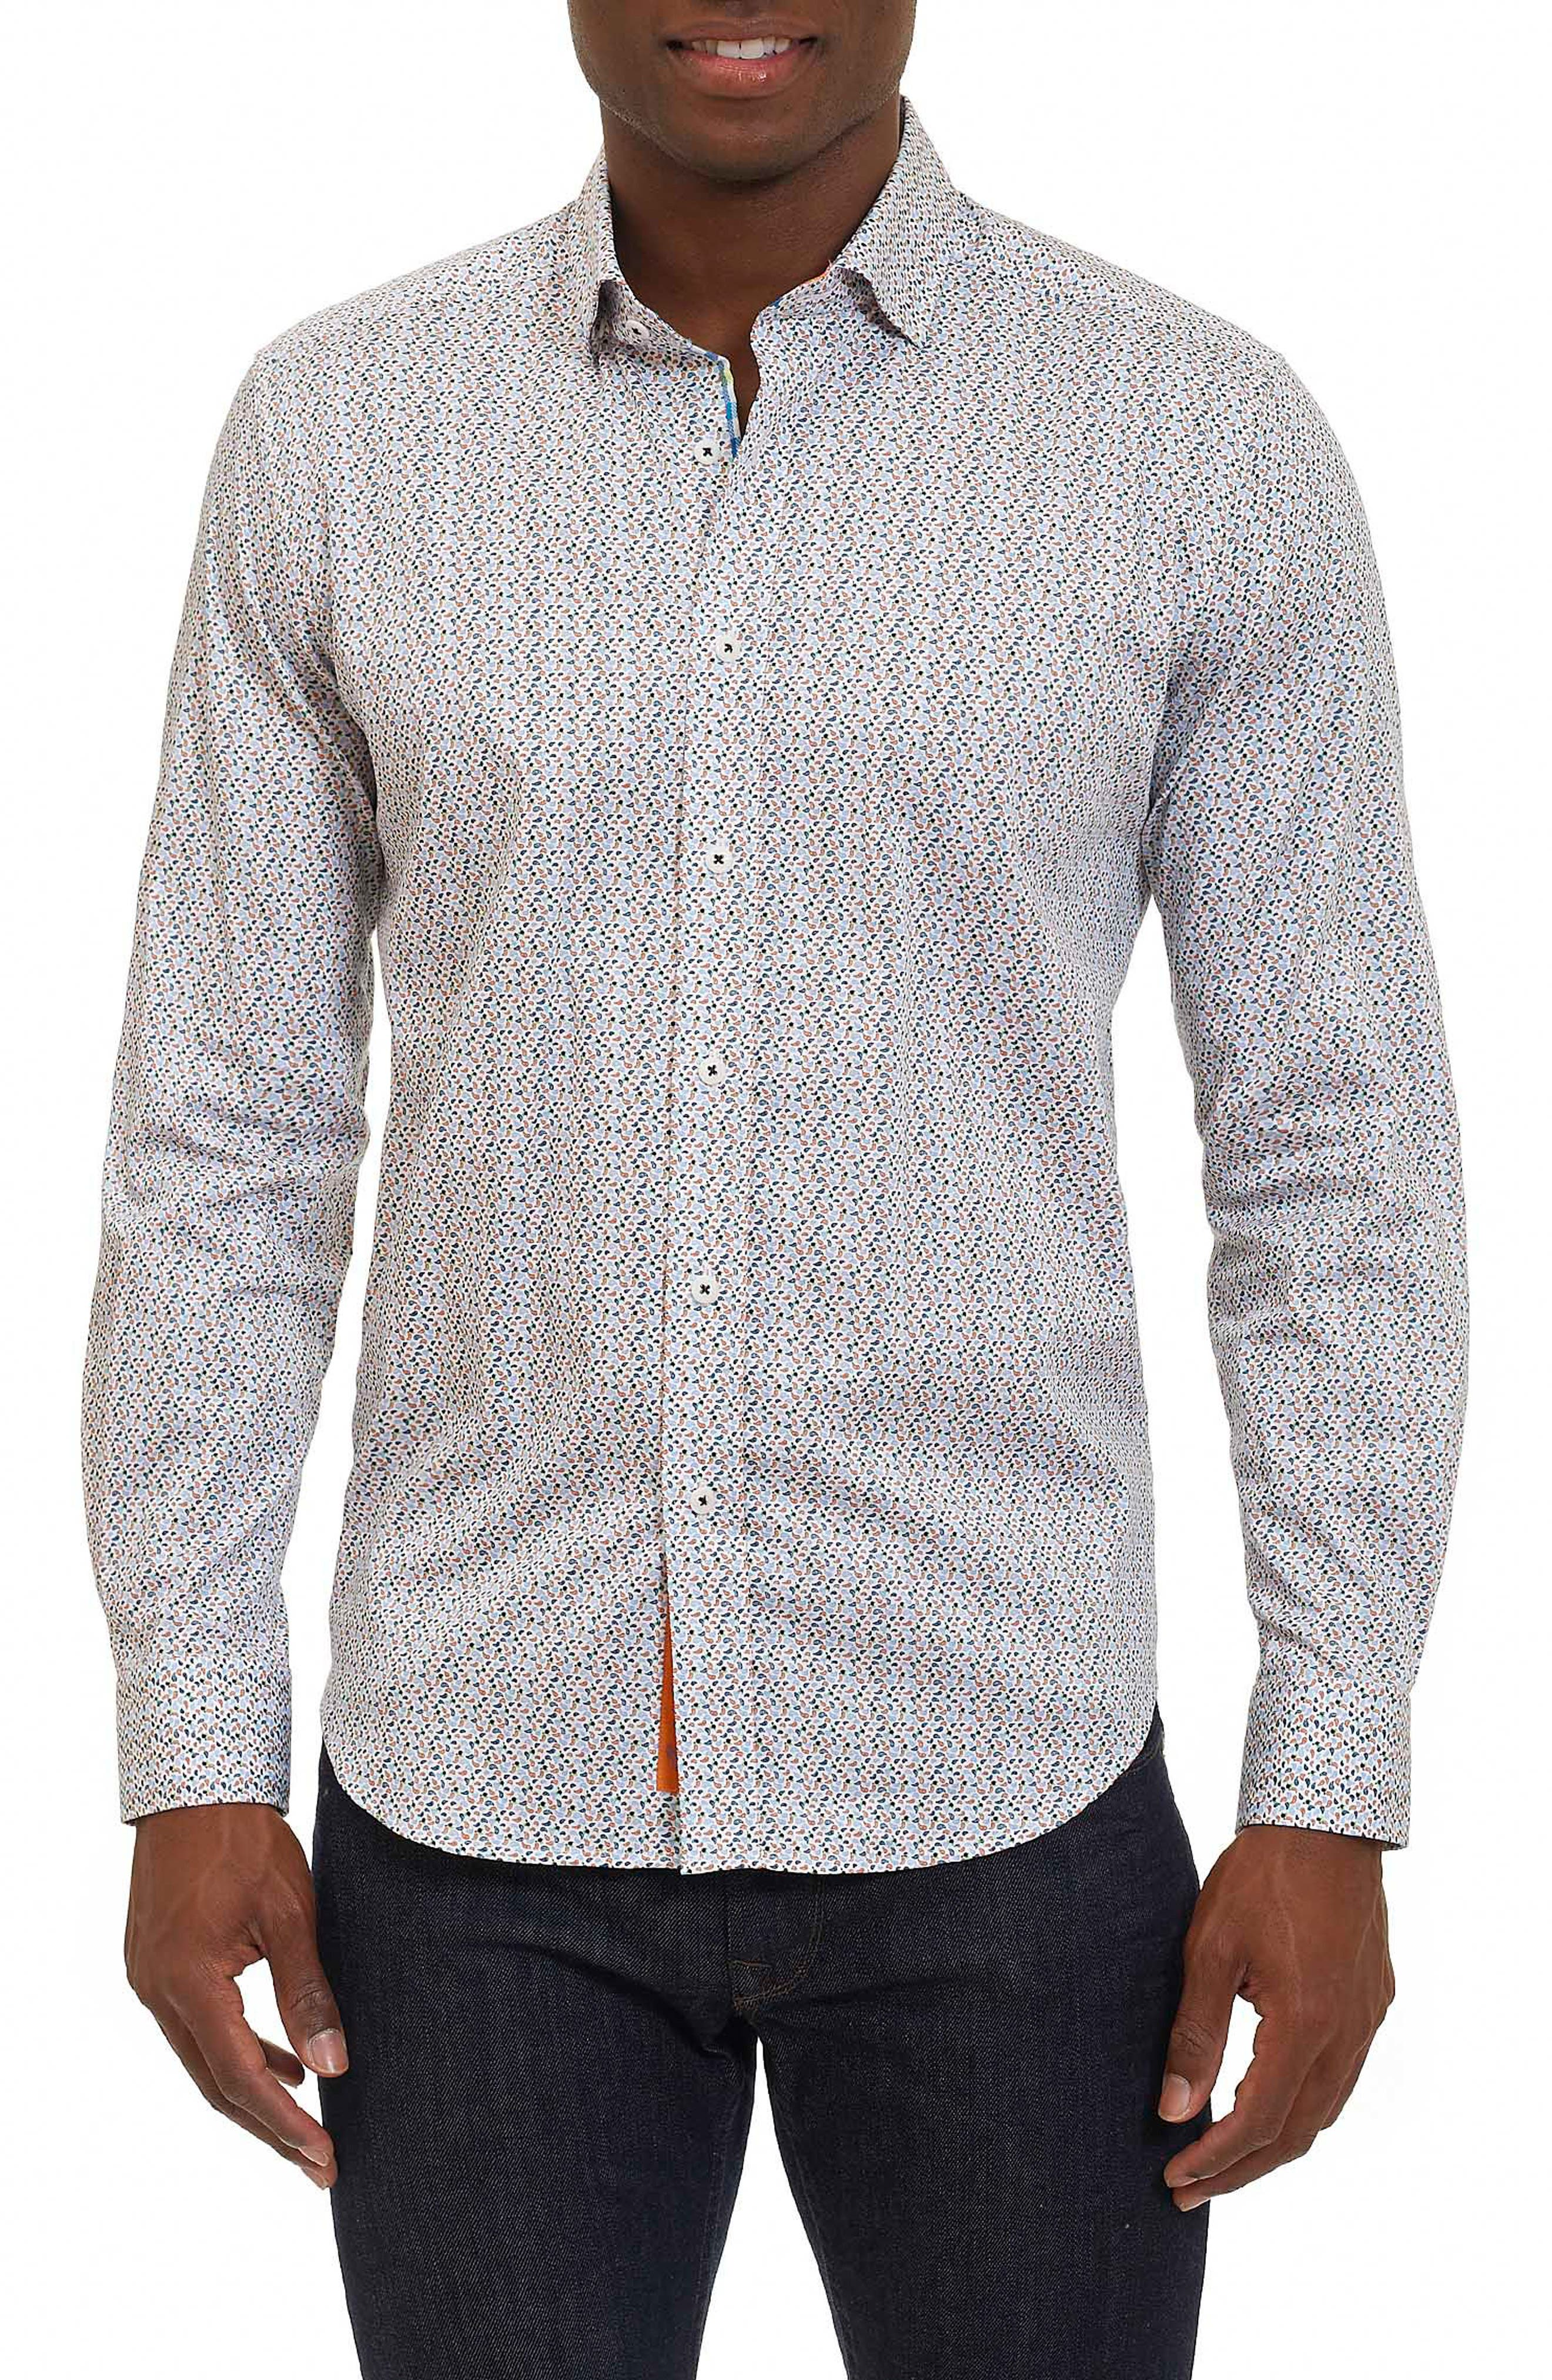 Phillip Print Sport Shirt,                         Main,                         color, Blue